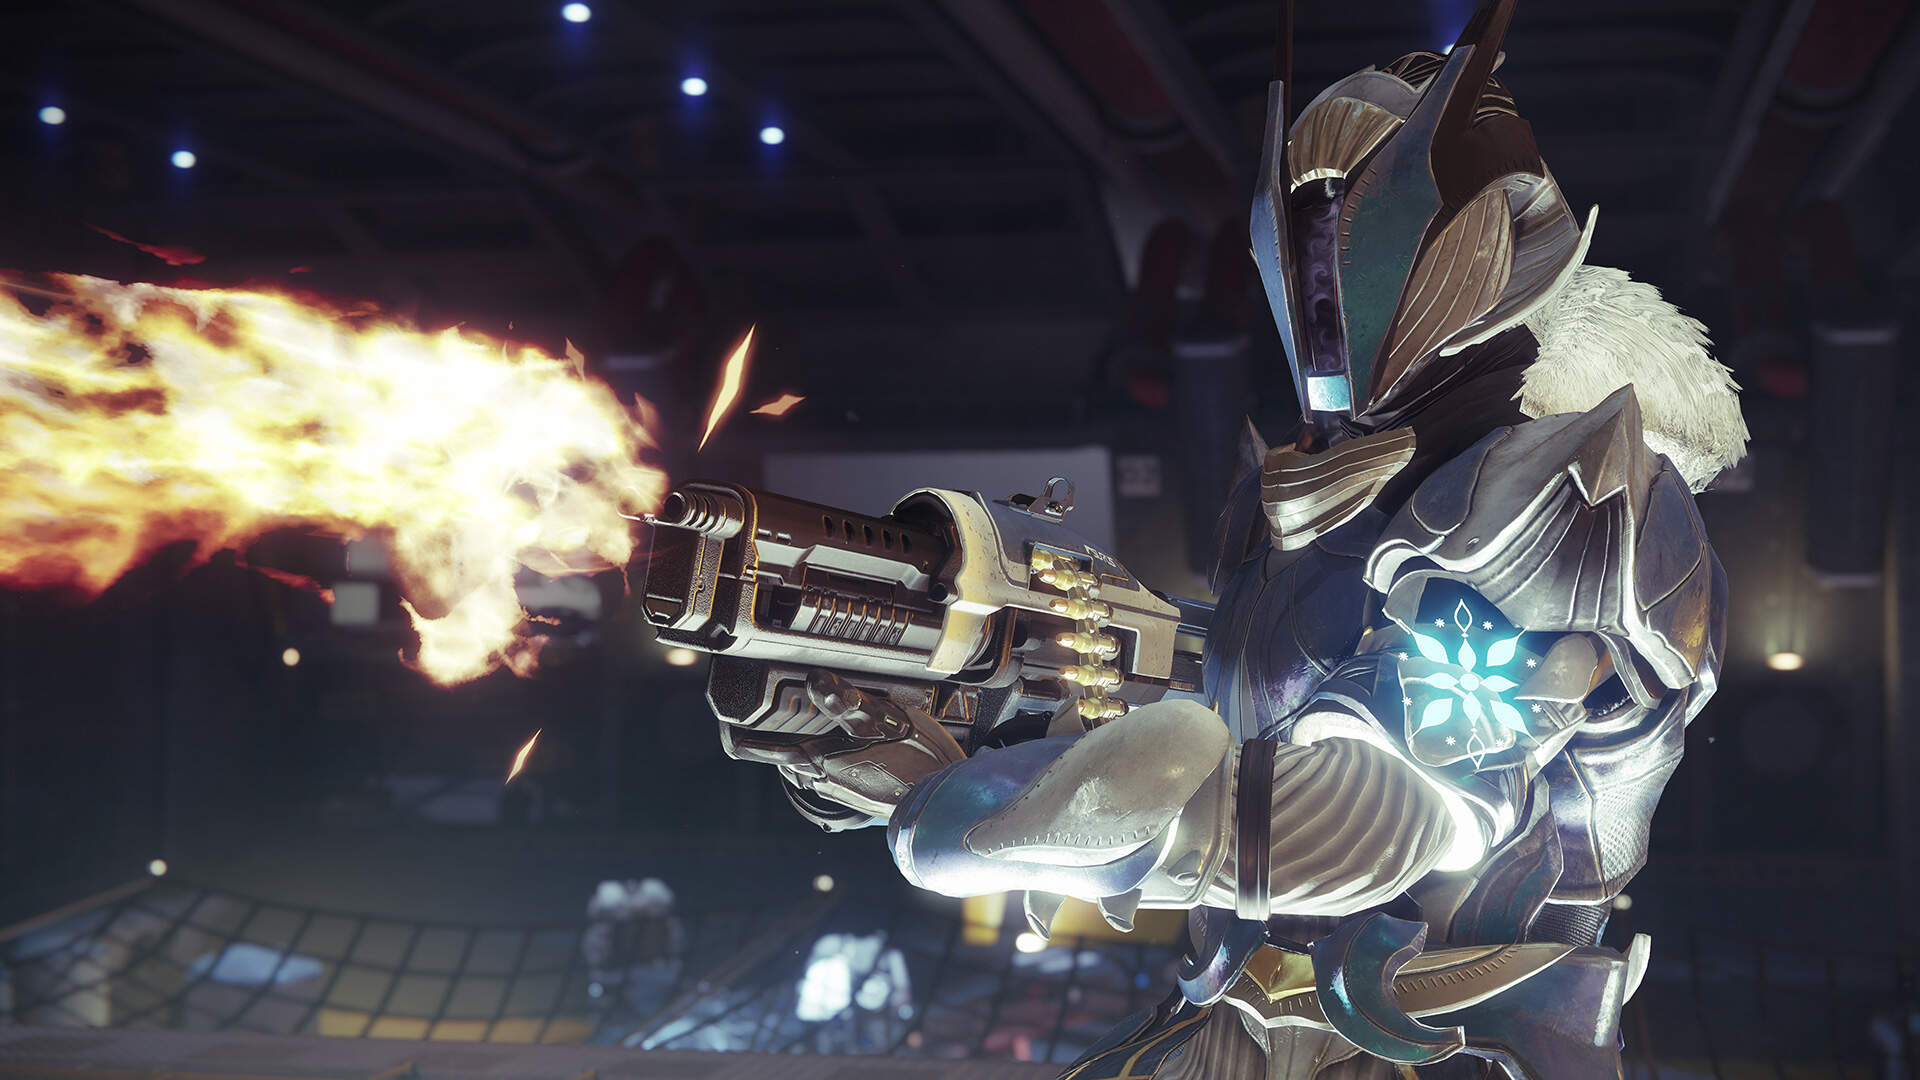 Destiny 2 New Light - What's Included in the Free to Play Version?